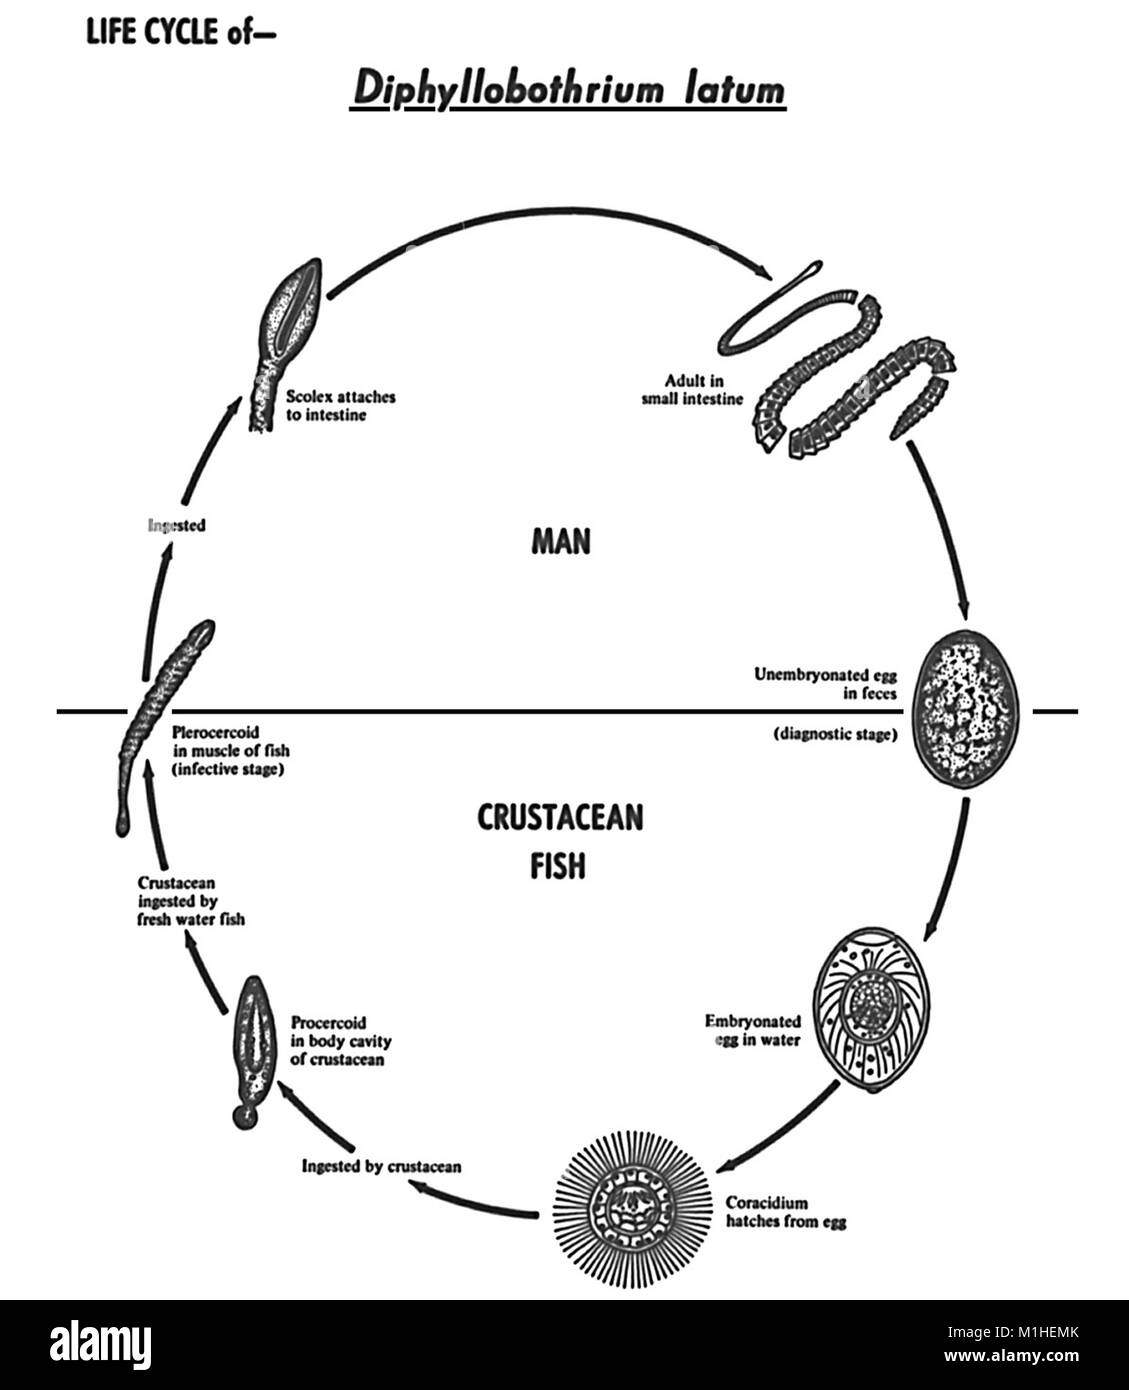 Tapeworm diphyllobothrium latum various stages in the life cycle tapeworm diphyllobothrium latum various stages in the life cycle illustrated 1986 image courtesy centers for disease control cdc ccuart Gallery